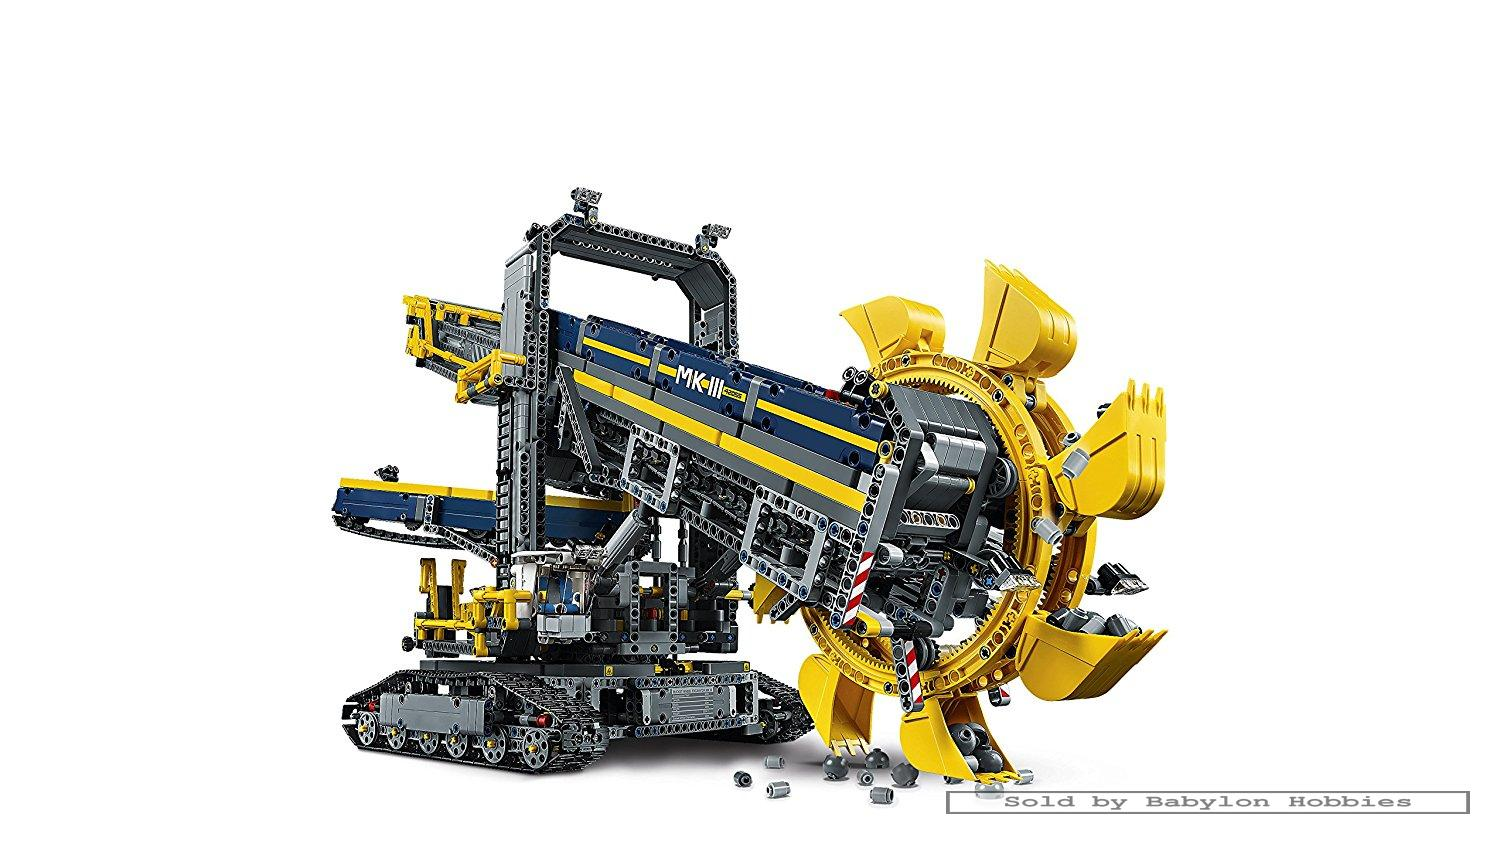 lego technic bucket wheel excavator by lego 42055. Black Bedroom Furniture Sets. Home Design Ideas